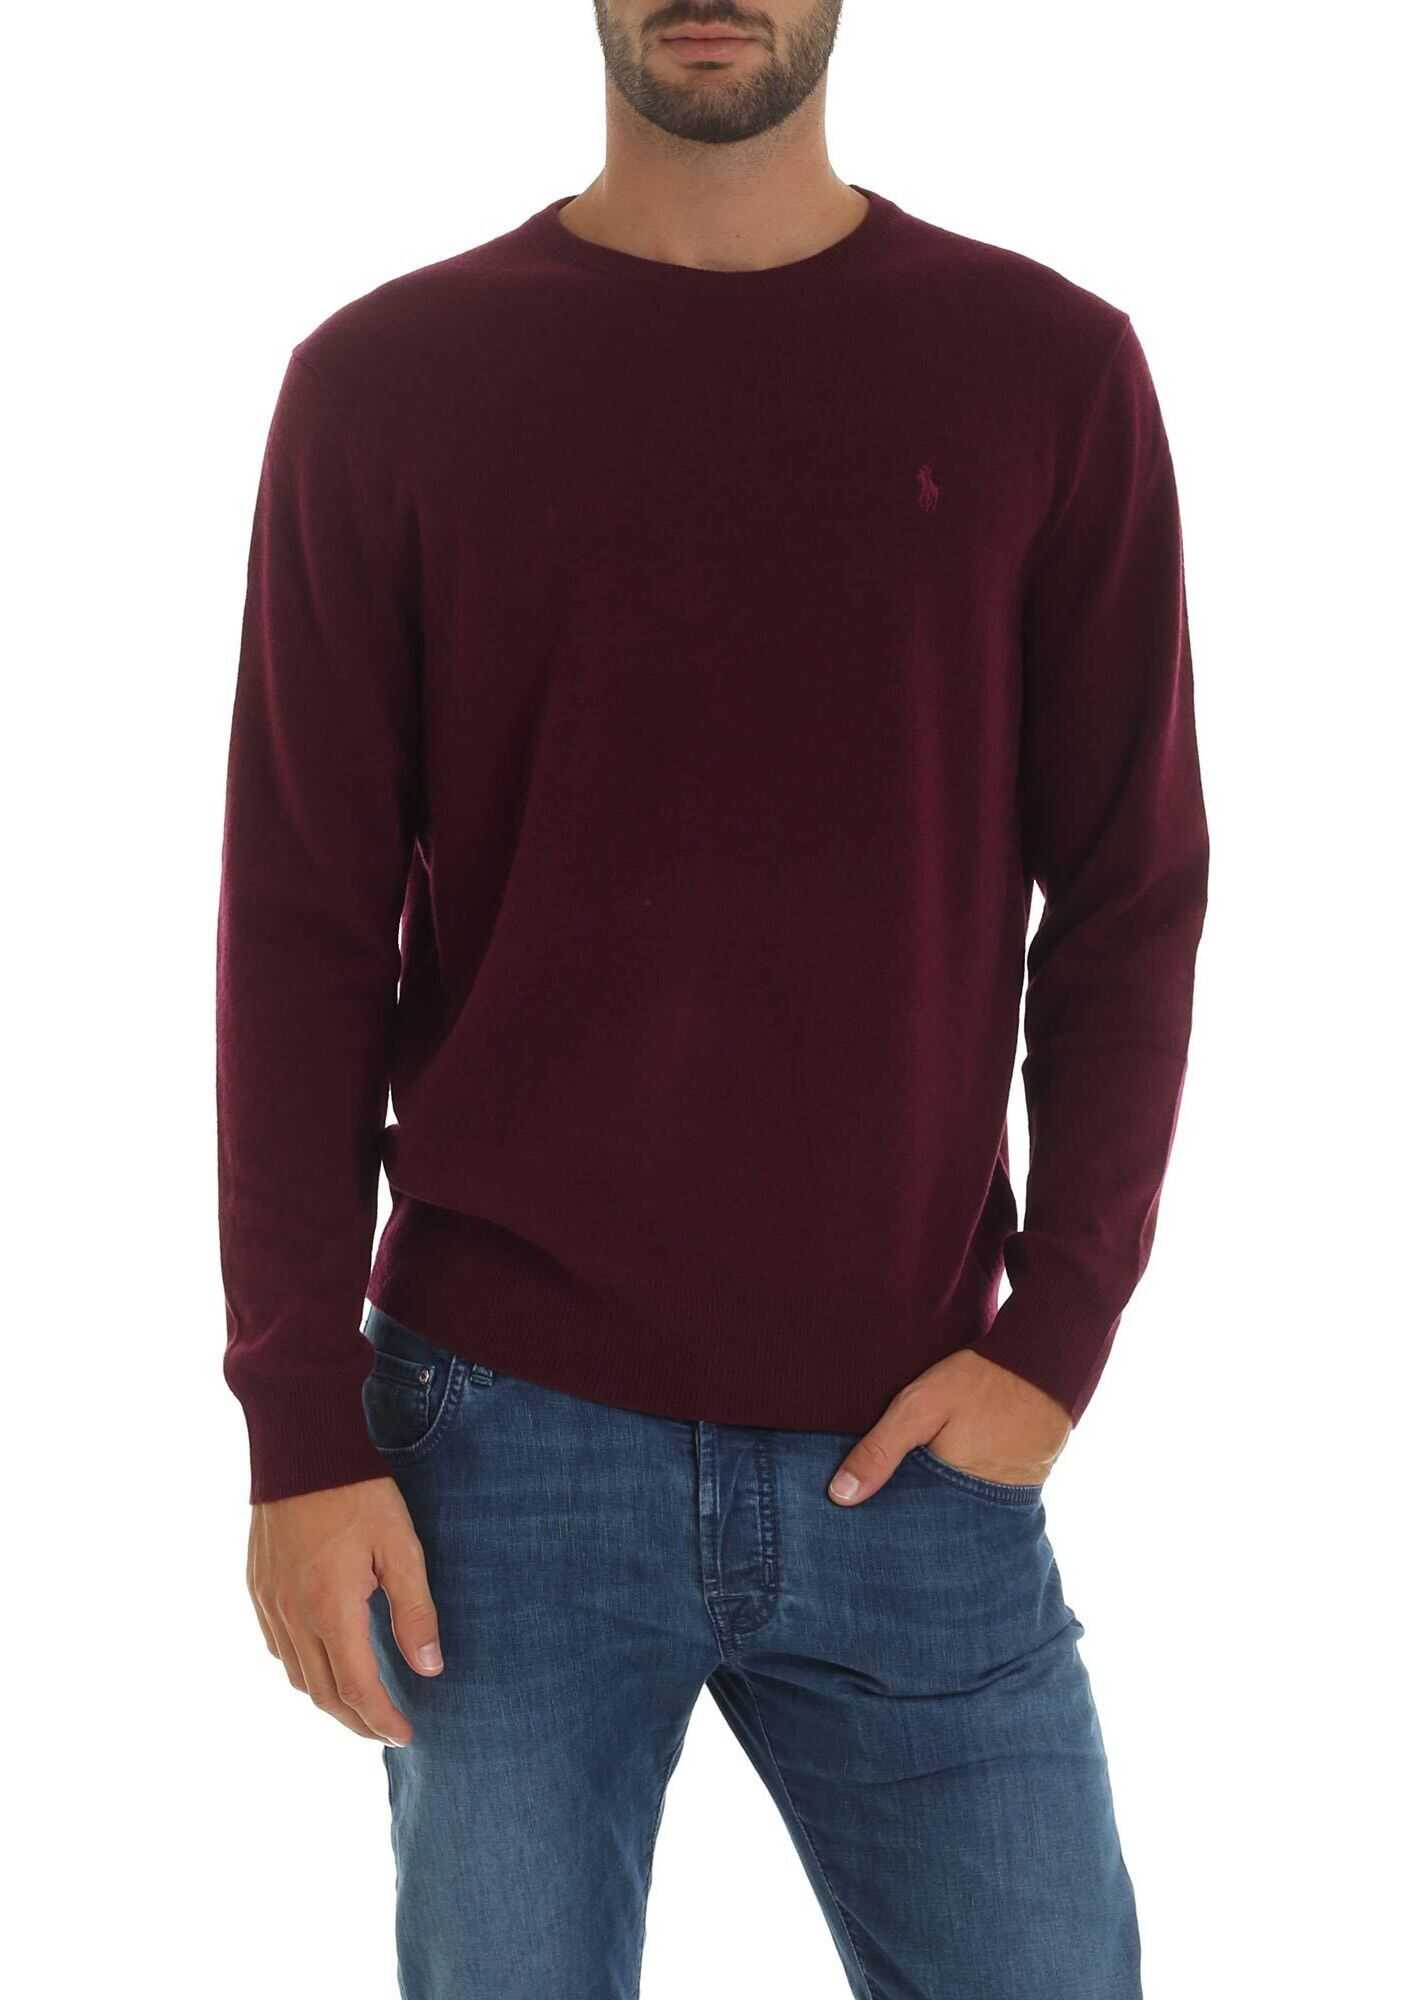 Wine-Colored Pullover With Logo Embroidery thumbnail